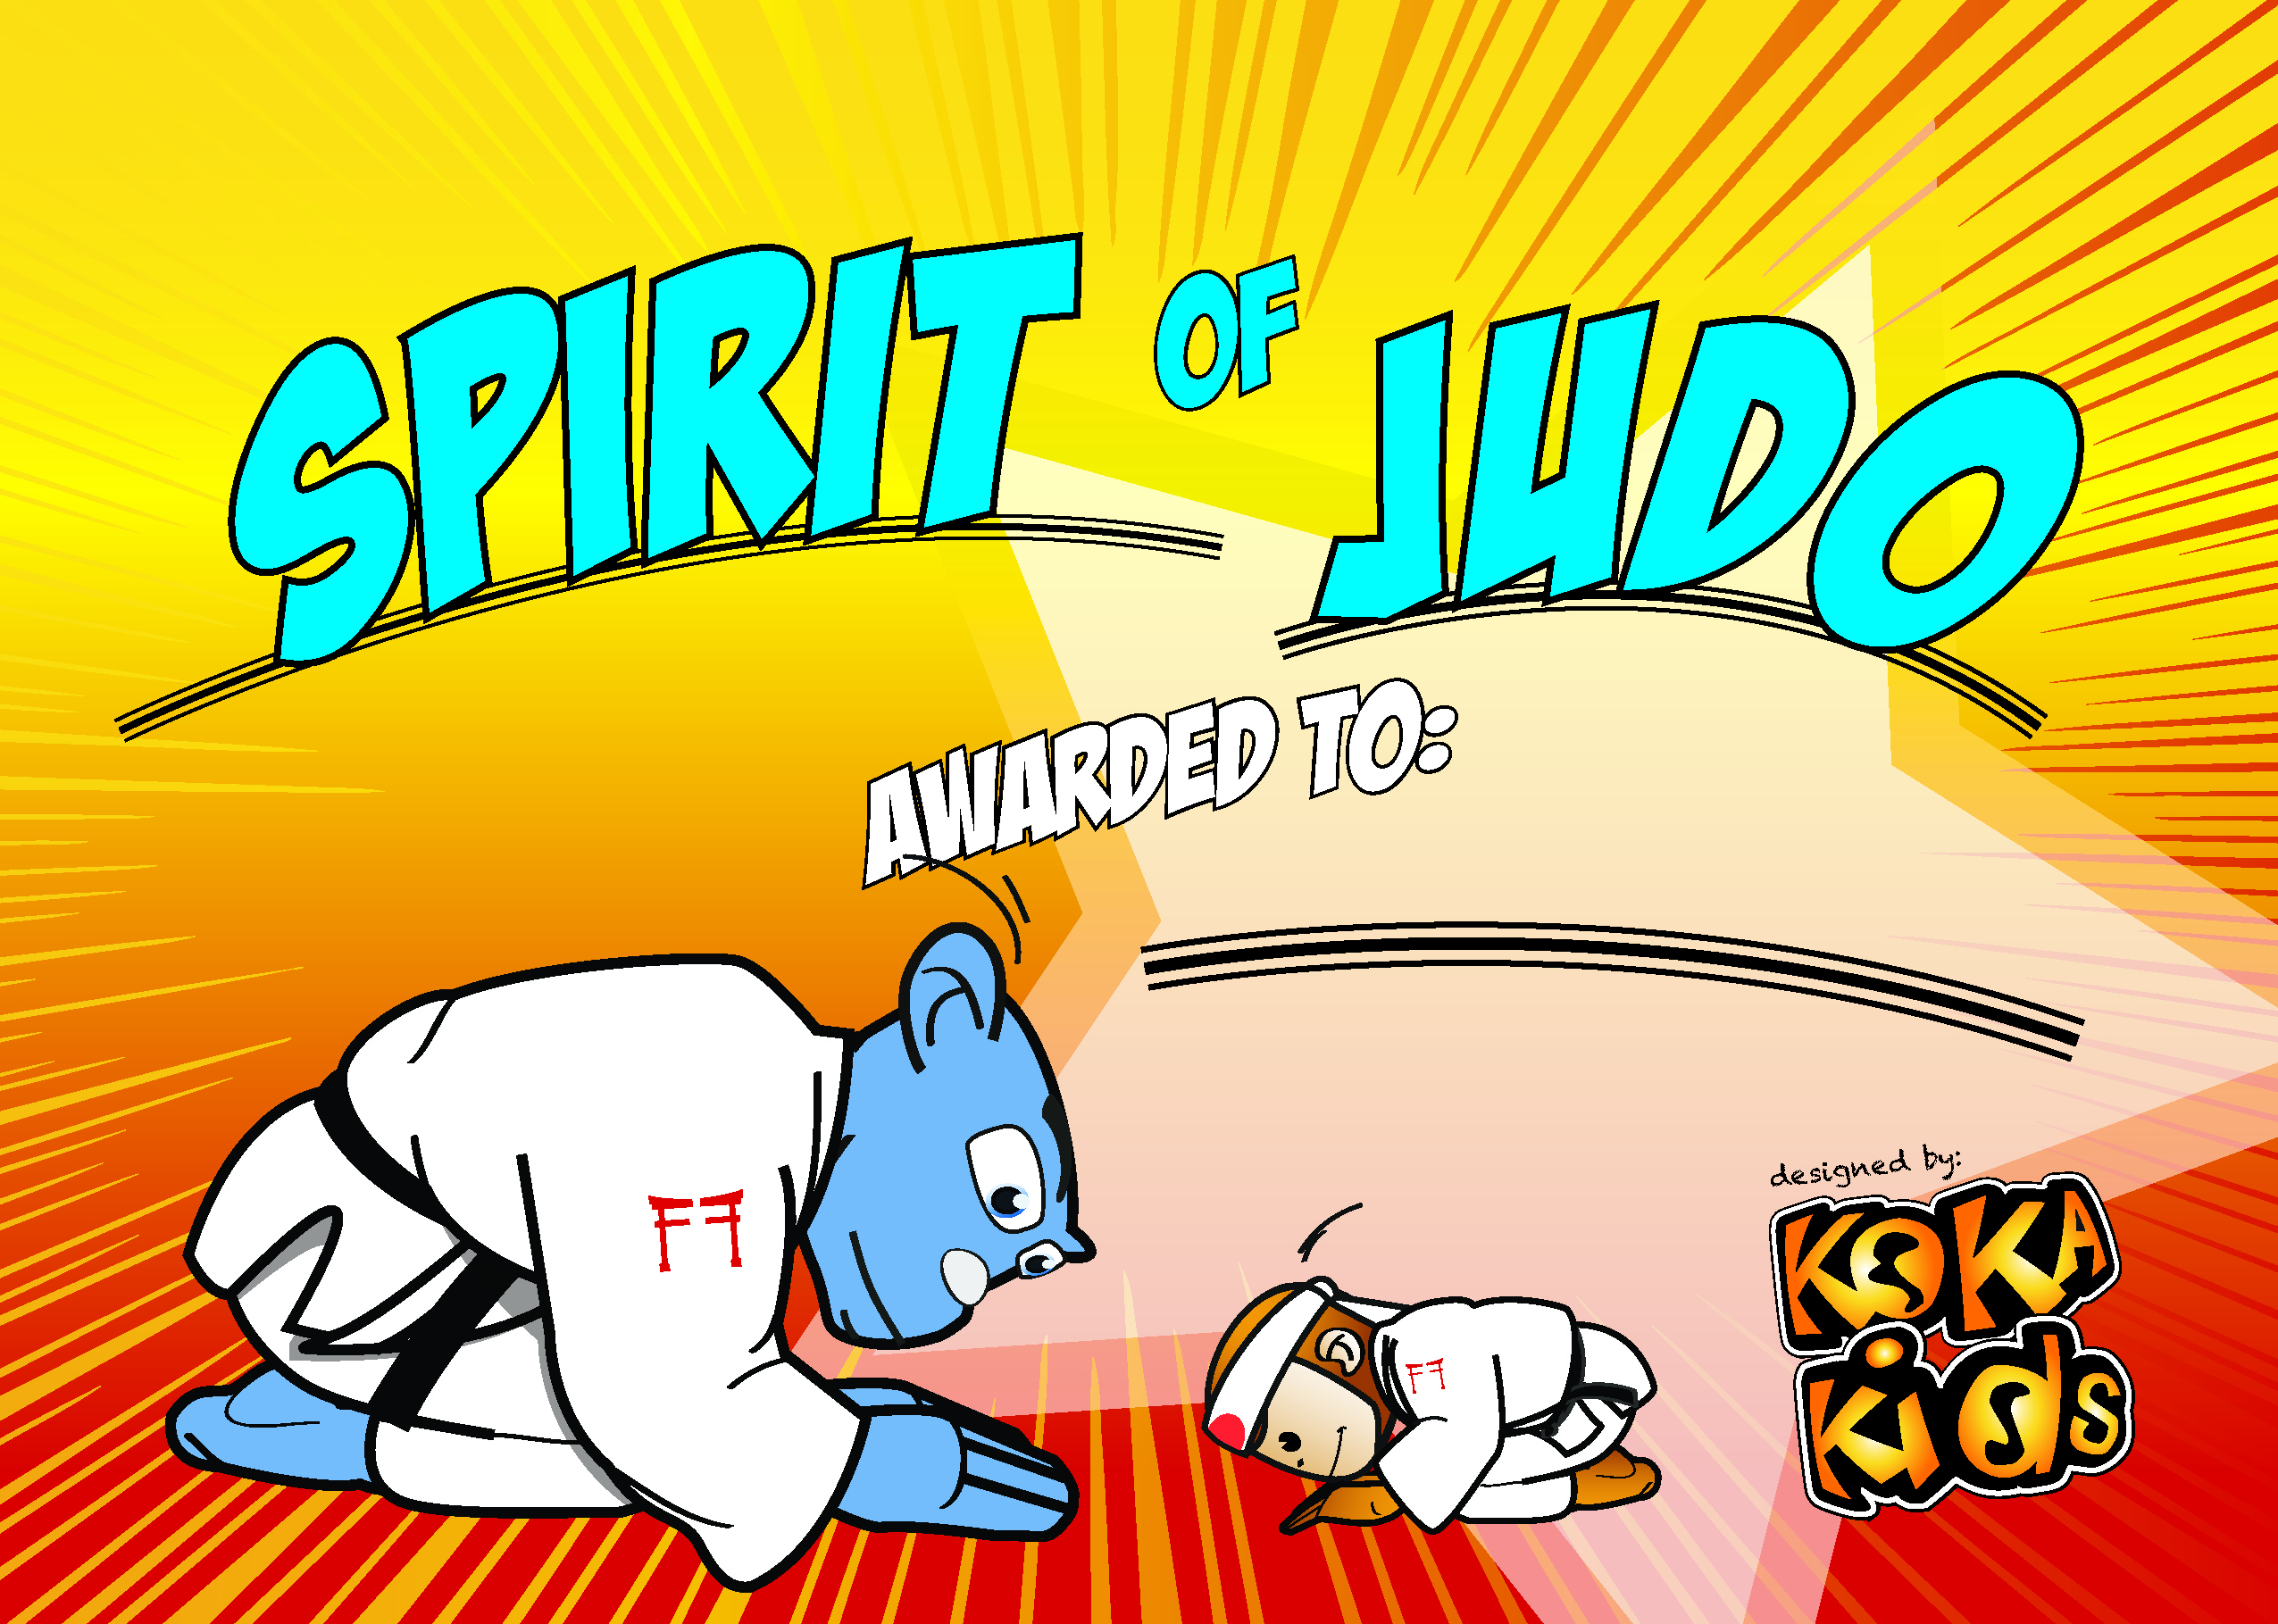 Free Download: Spirit of Judo Certificate